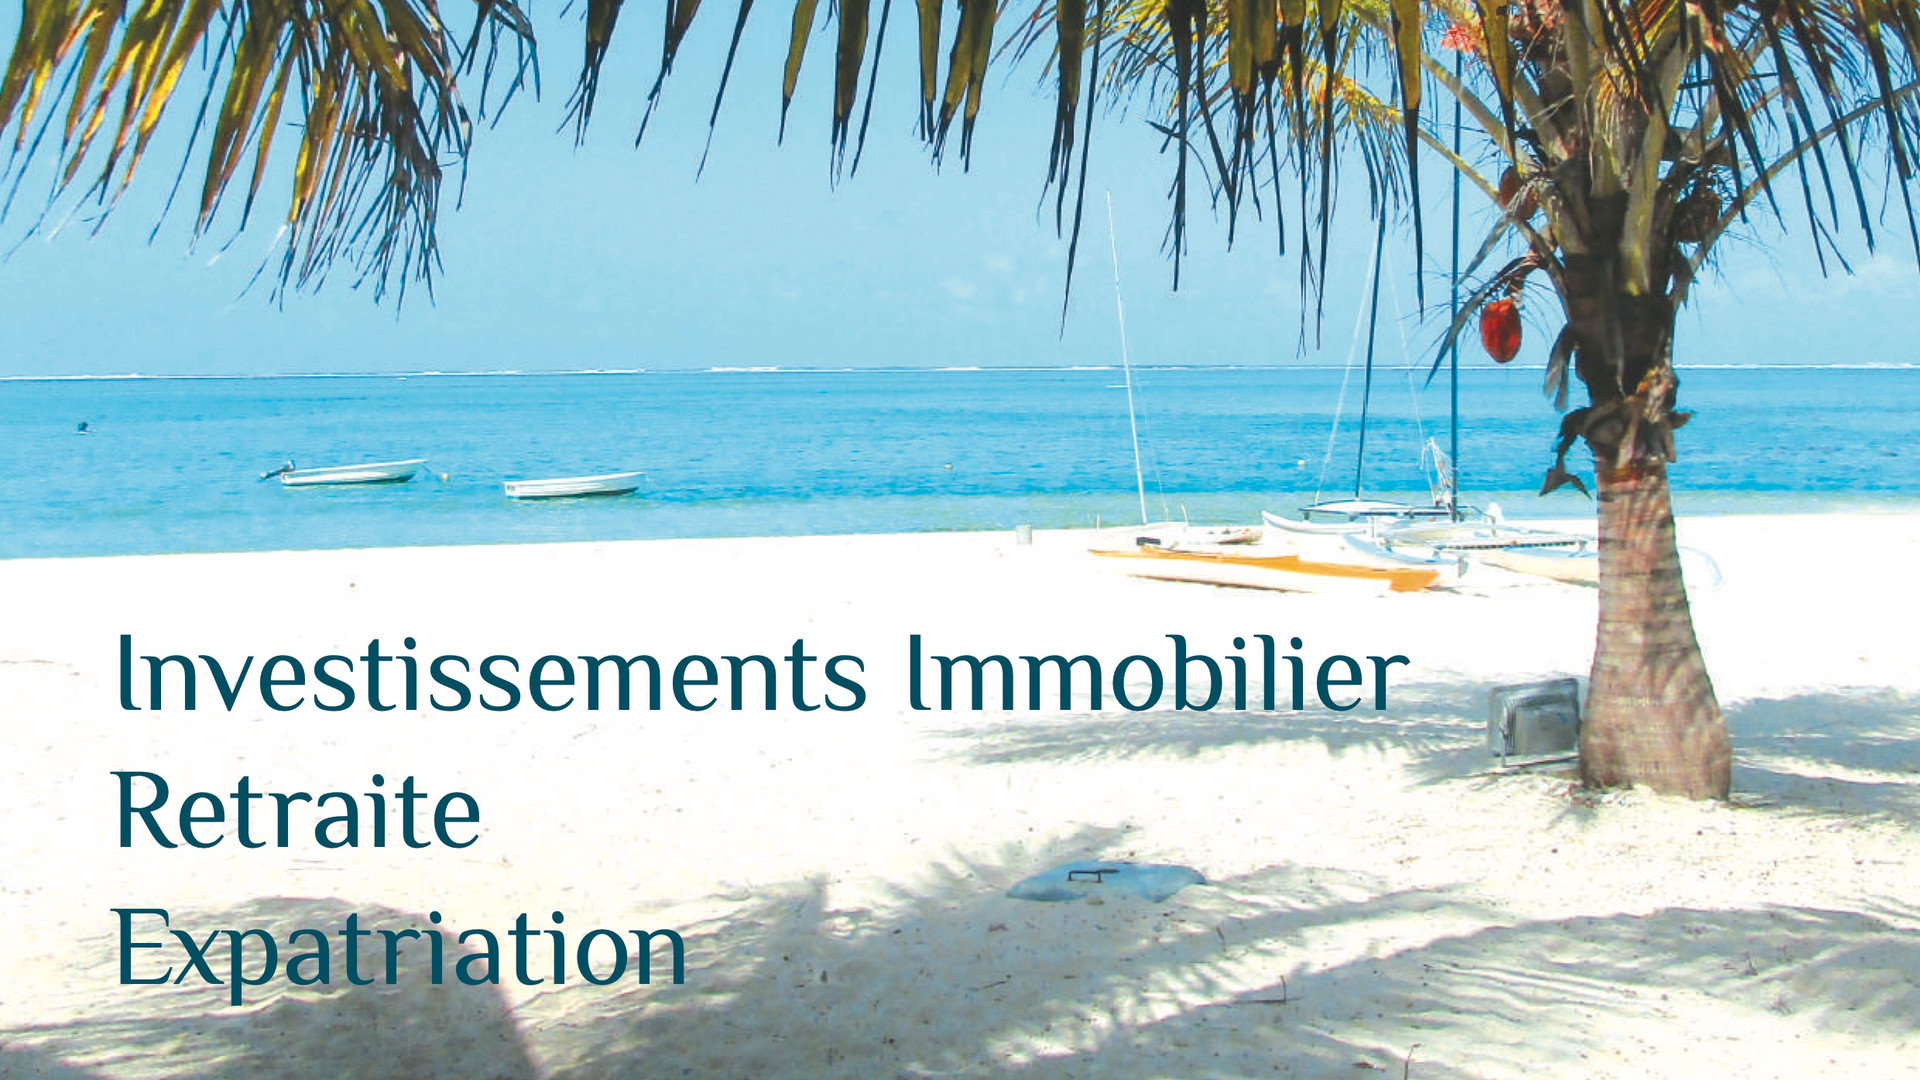 Sumad Immobilier Conseil